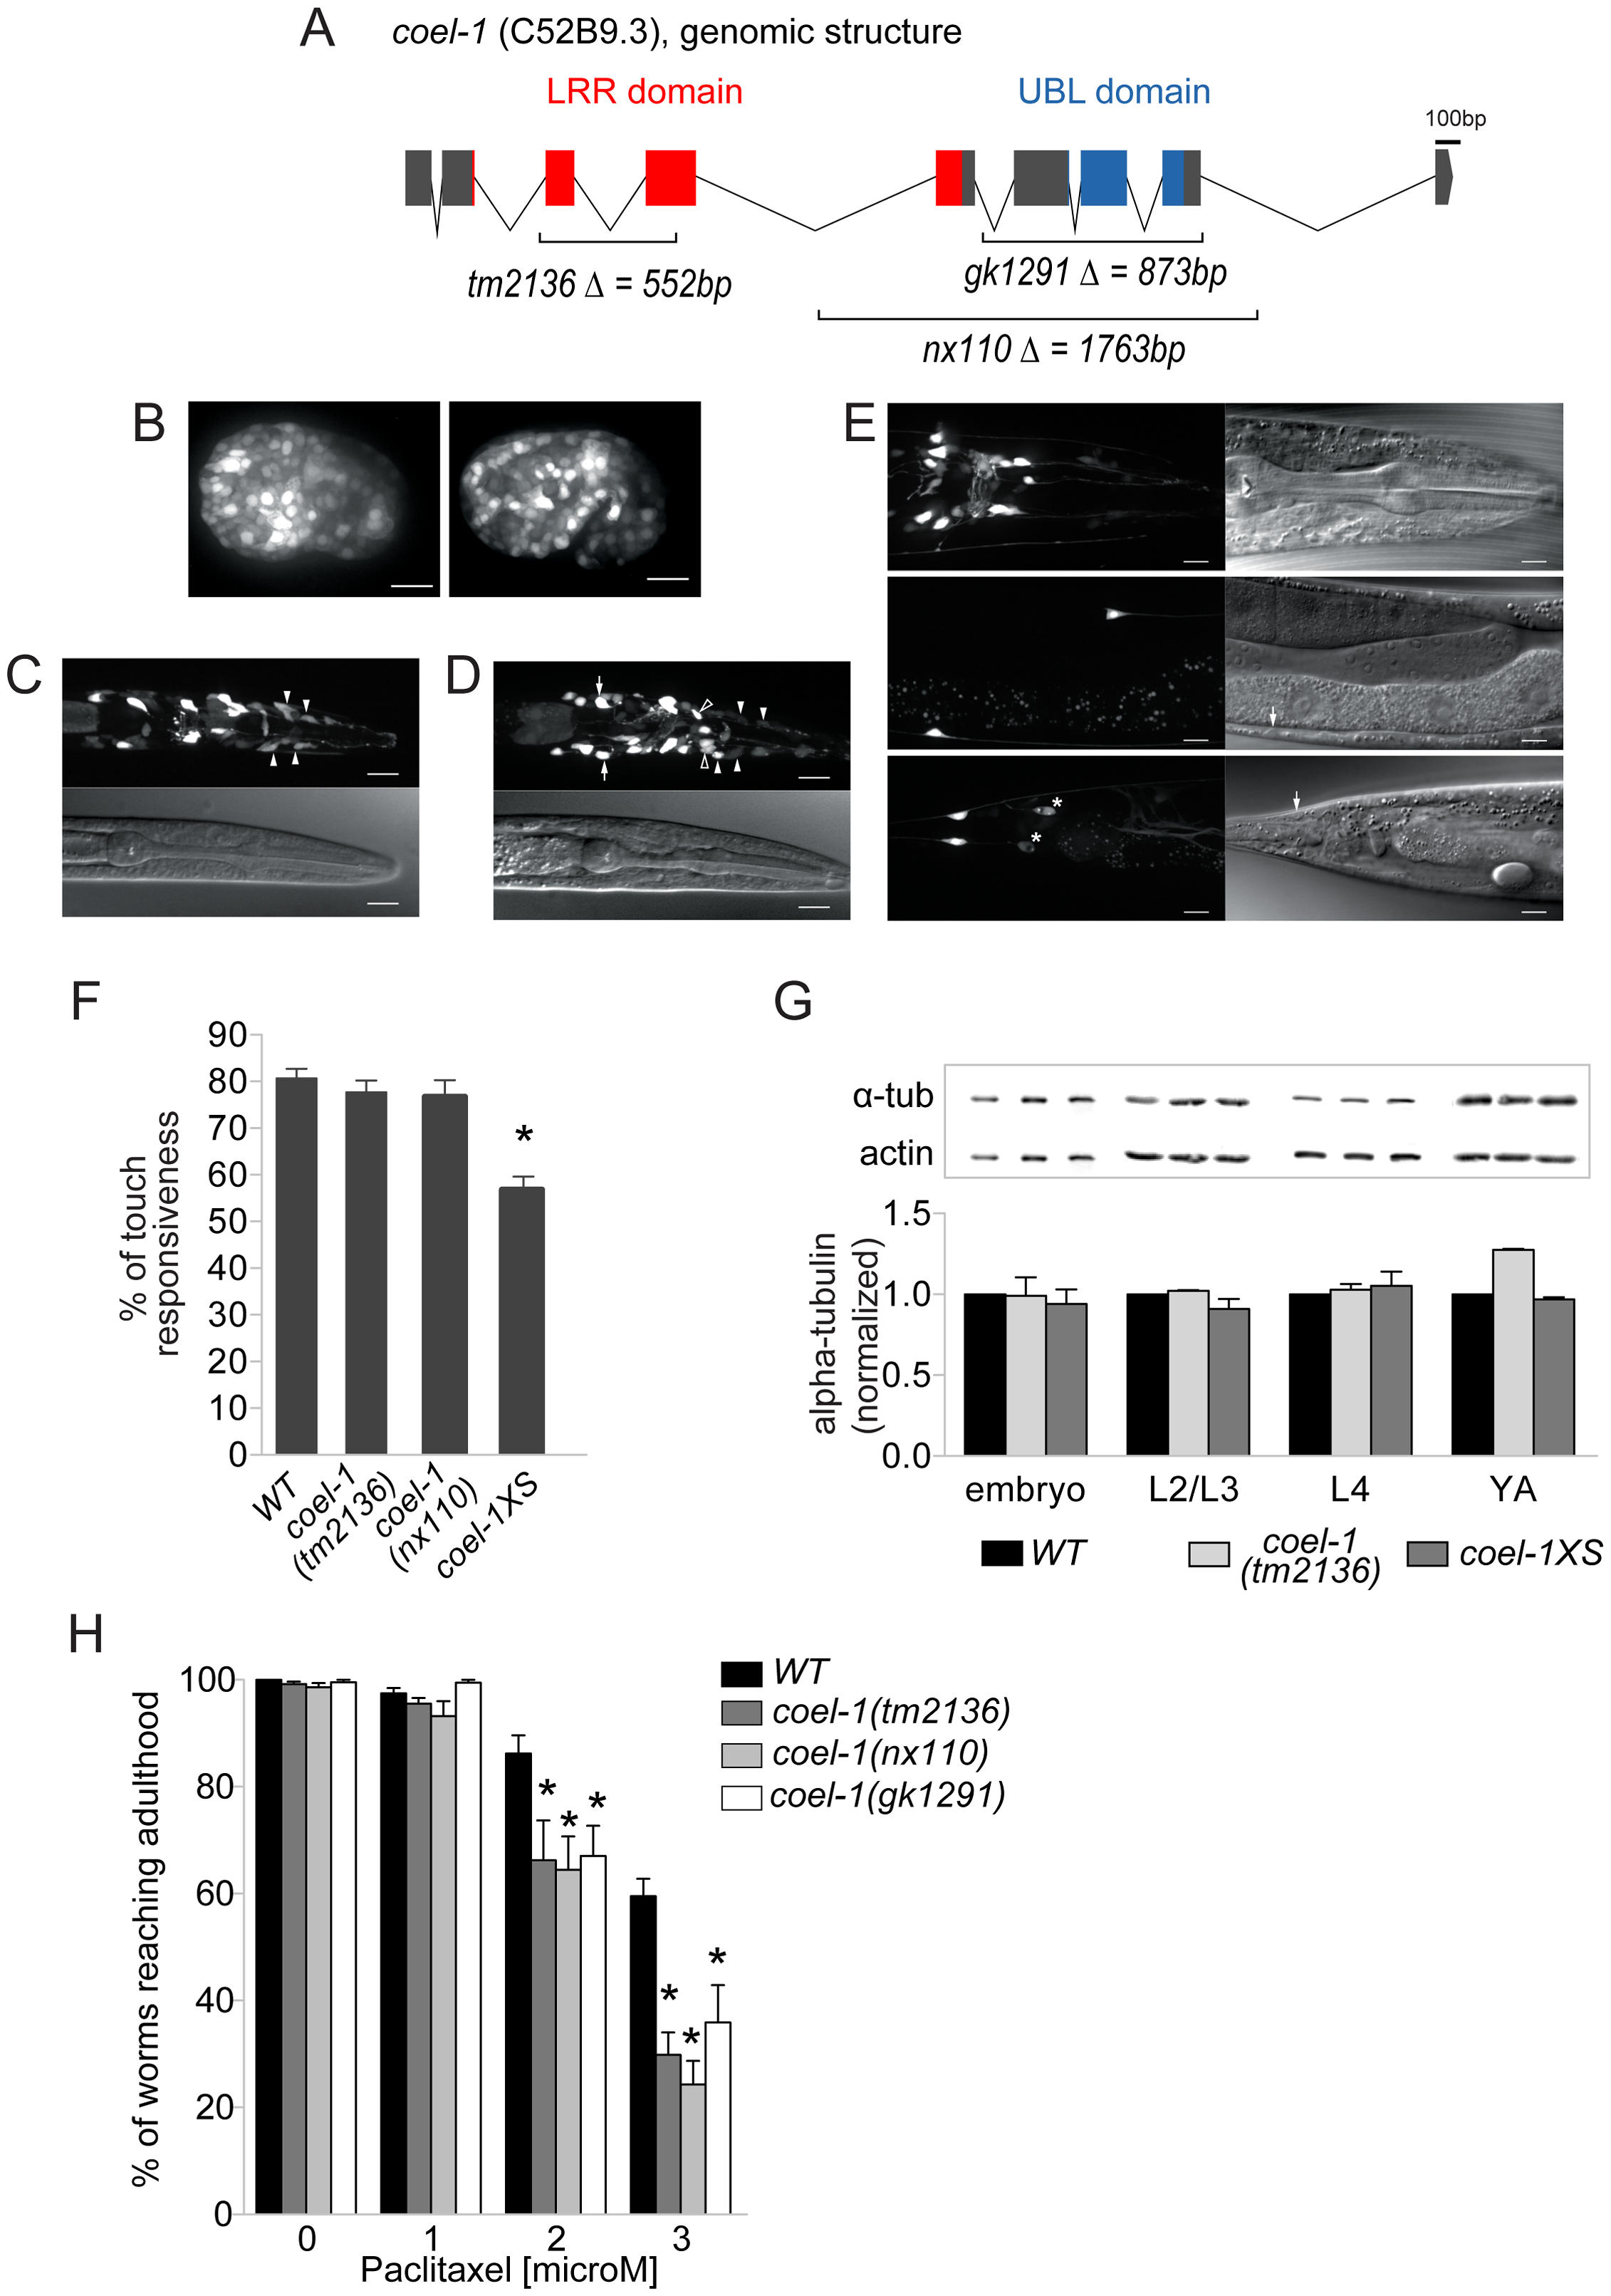 <i>coel-1</i> is expressed ubiquitously in embryos but largely confined to neurons in adults, and plays a role in microtubule stability and touch responsiveness.